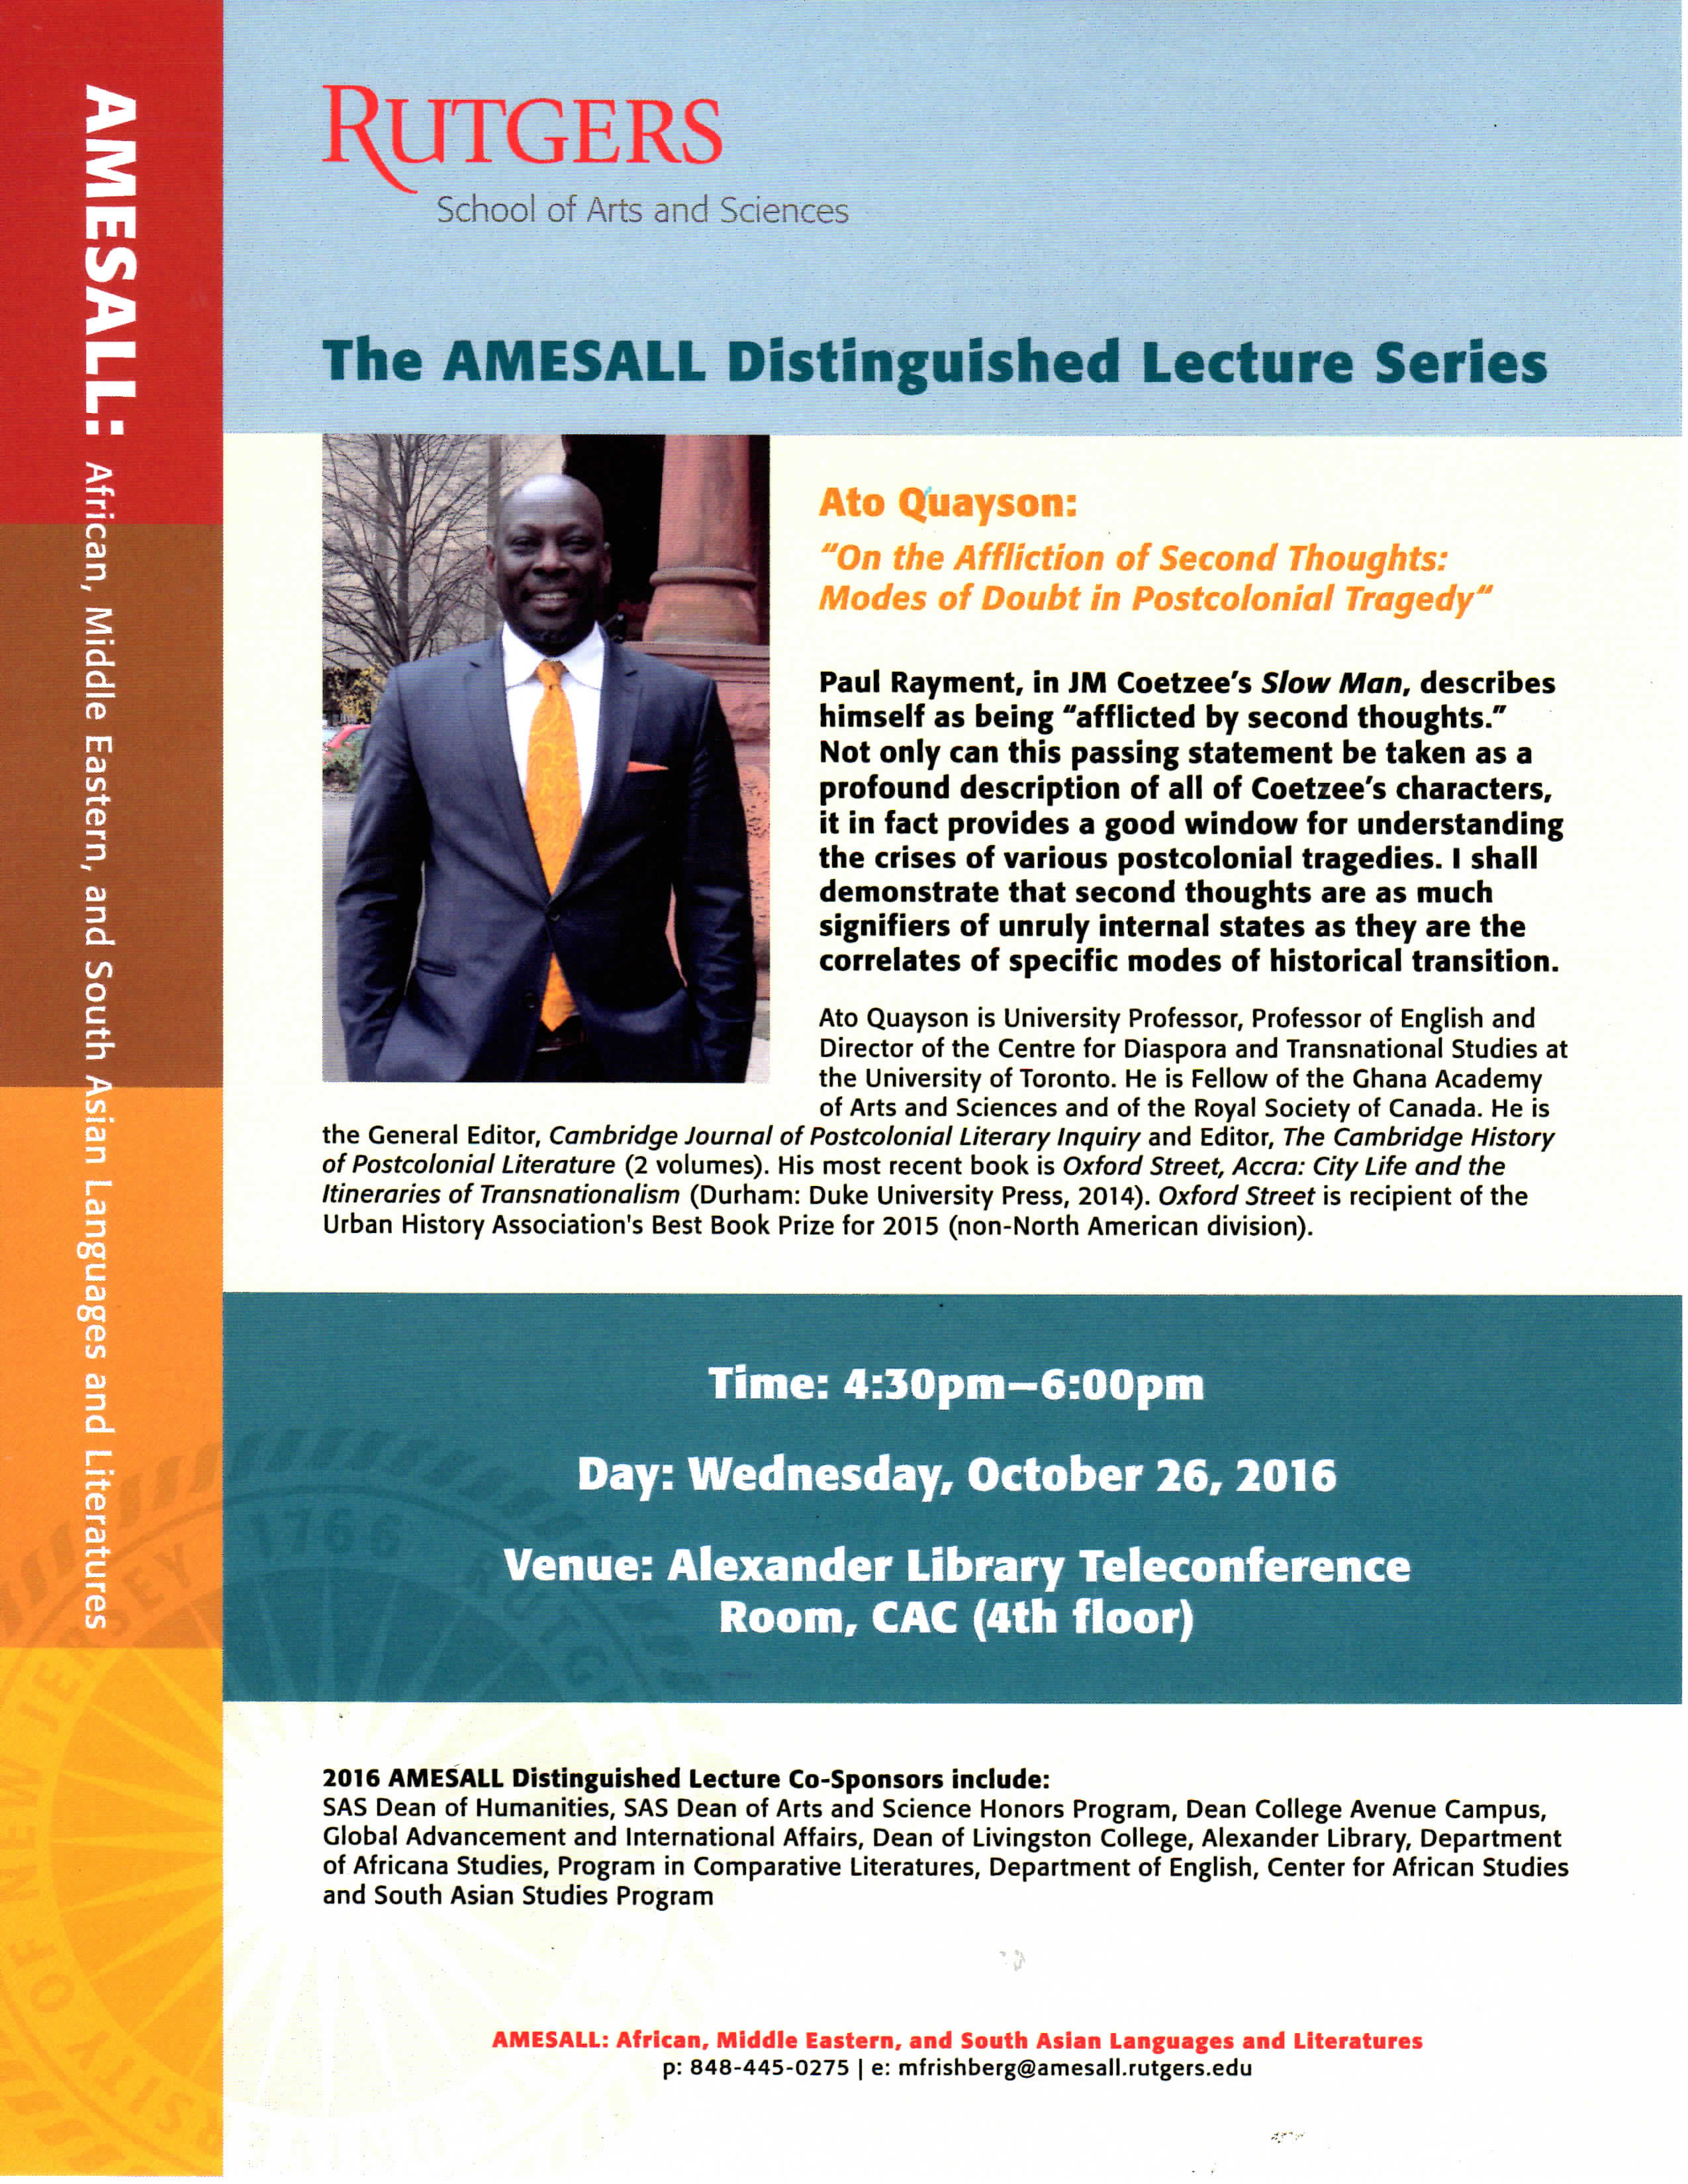 Distinguished-Lecture-Poster-10.26.16